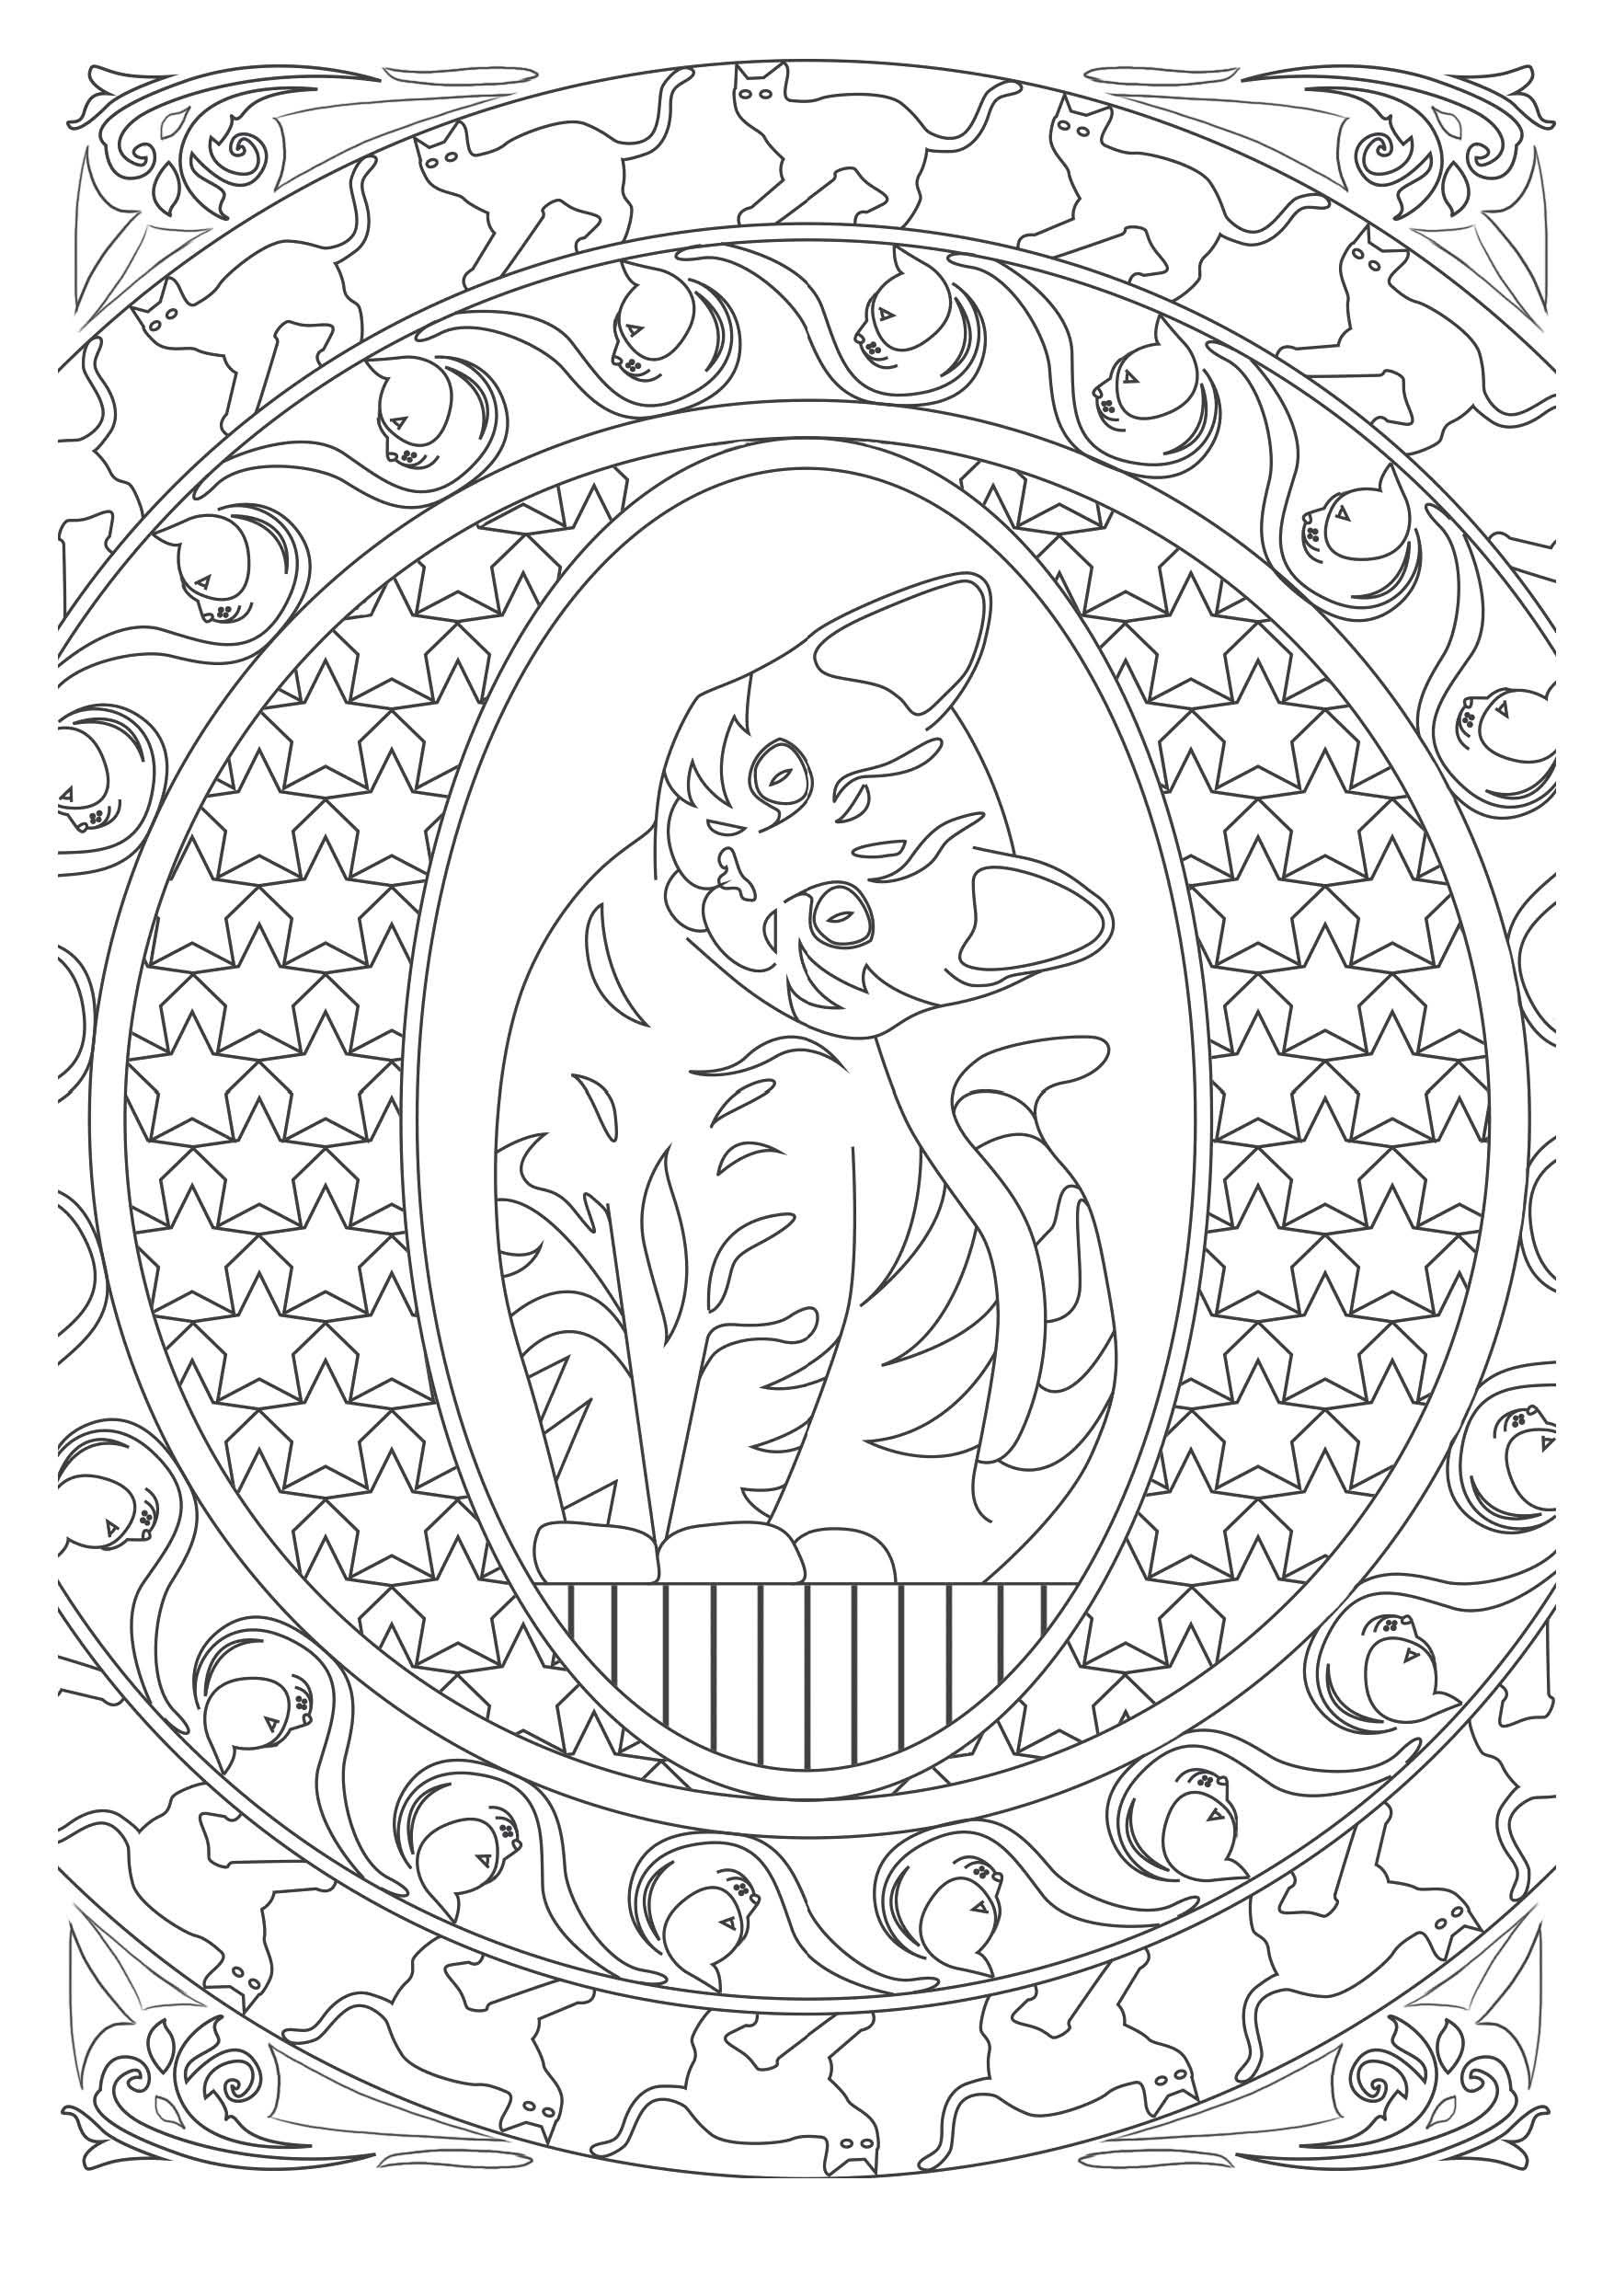 art therapy coloring pages cat - photo#16